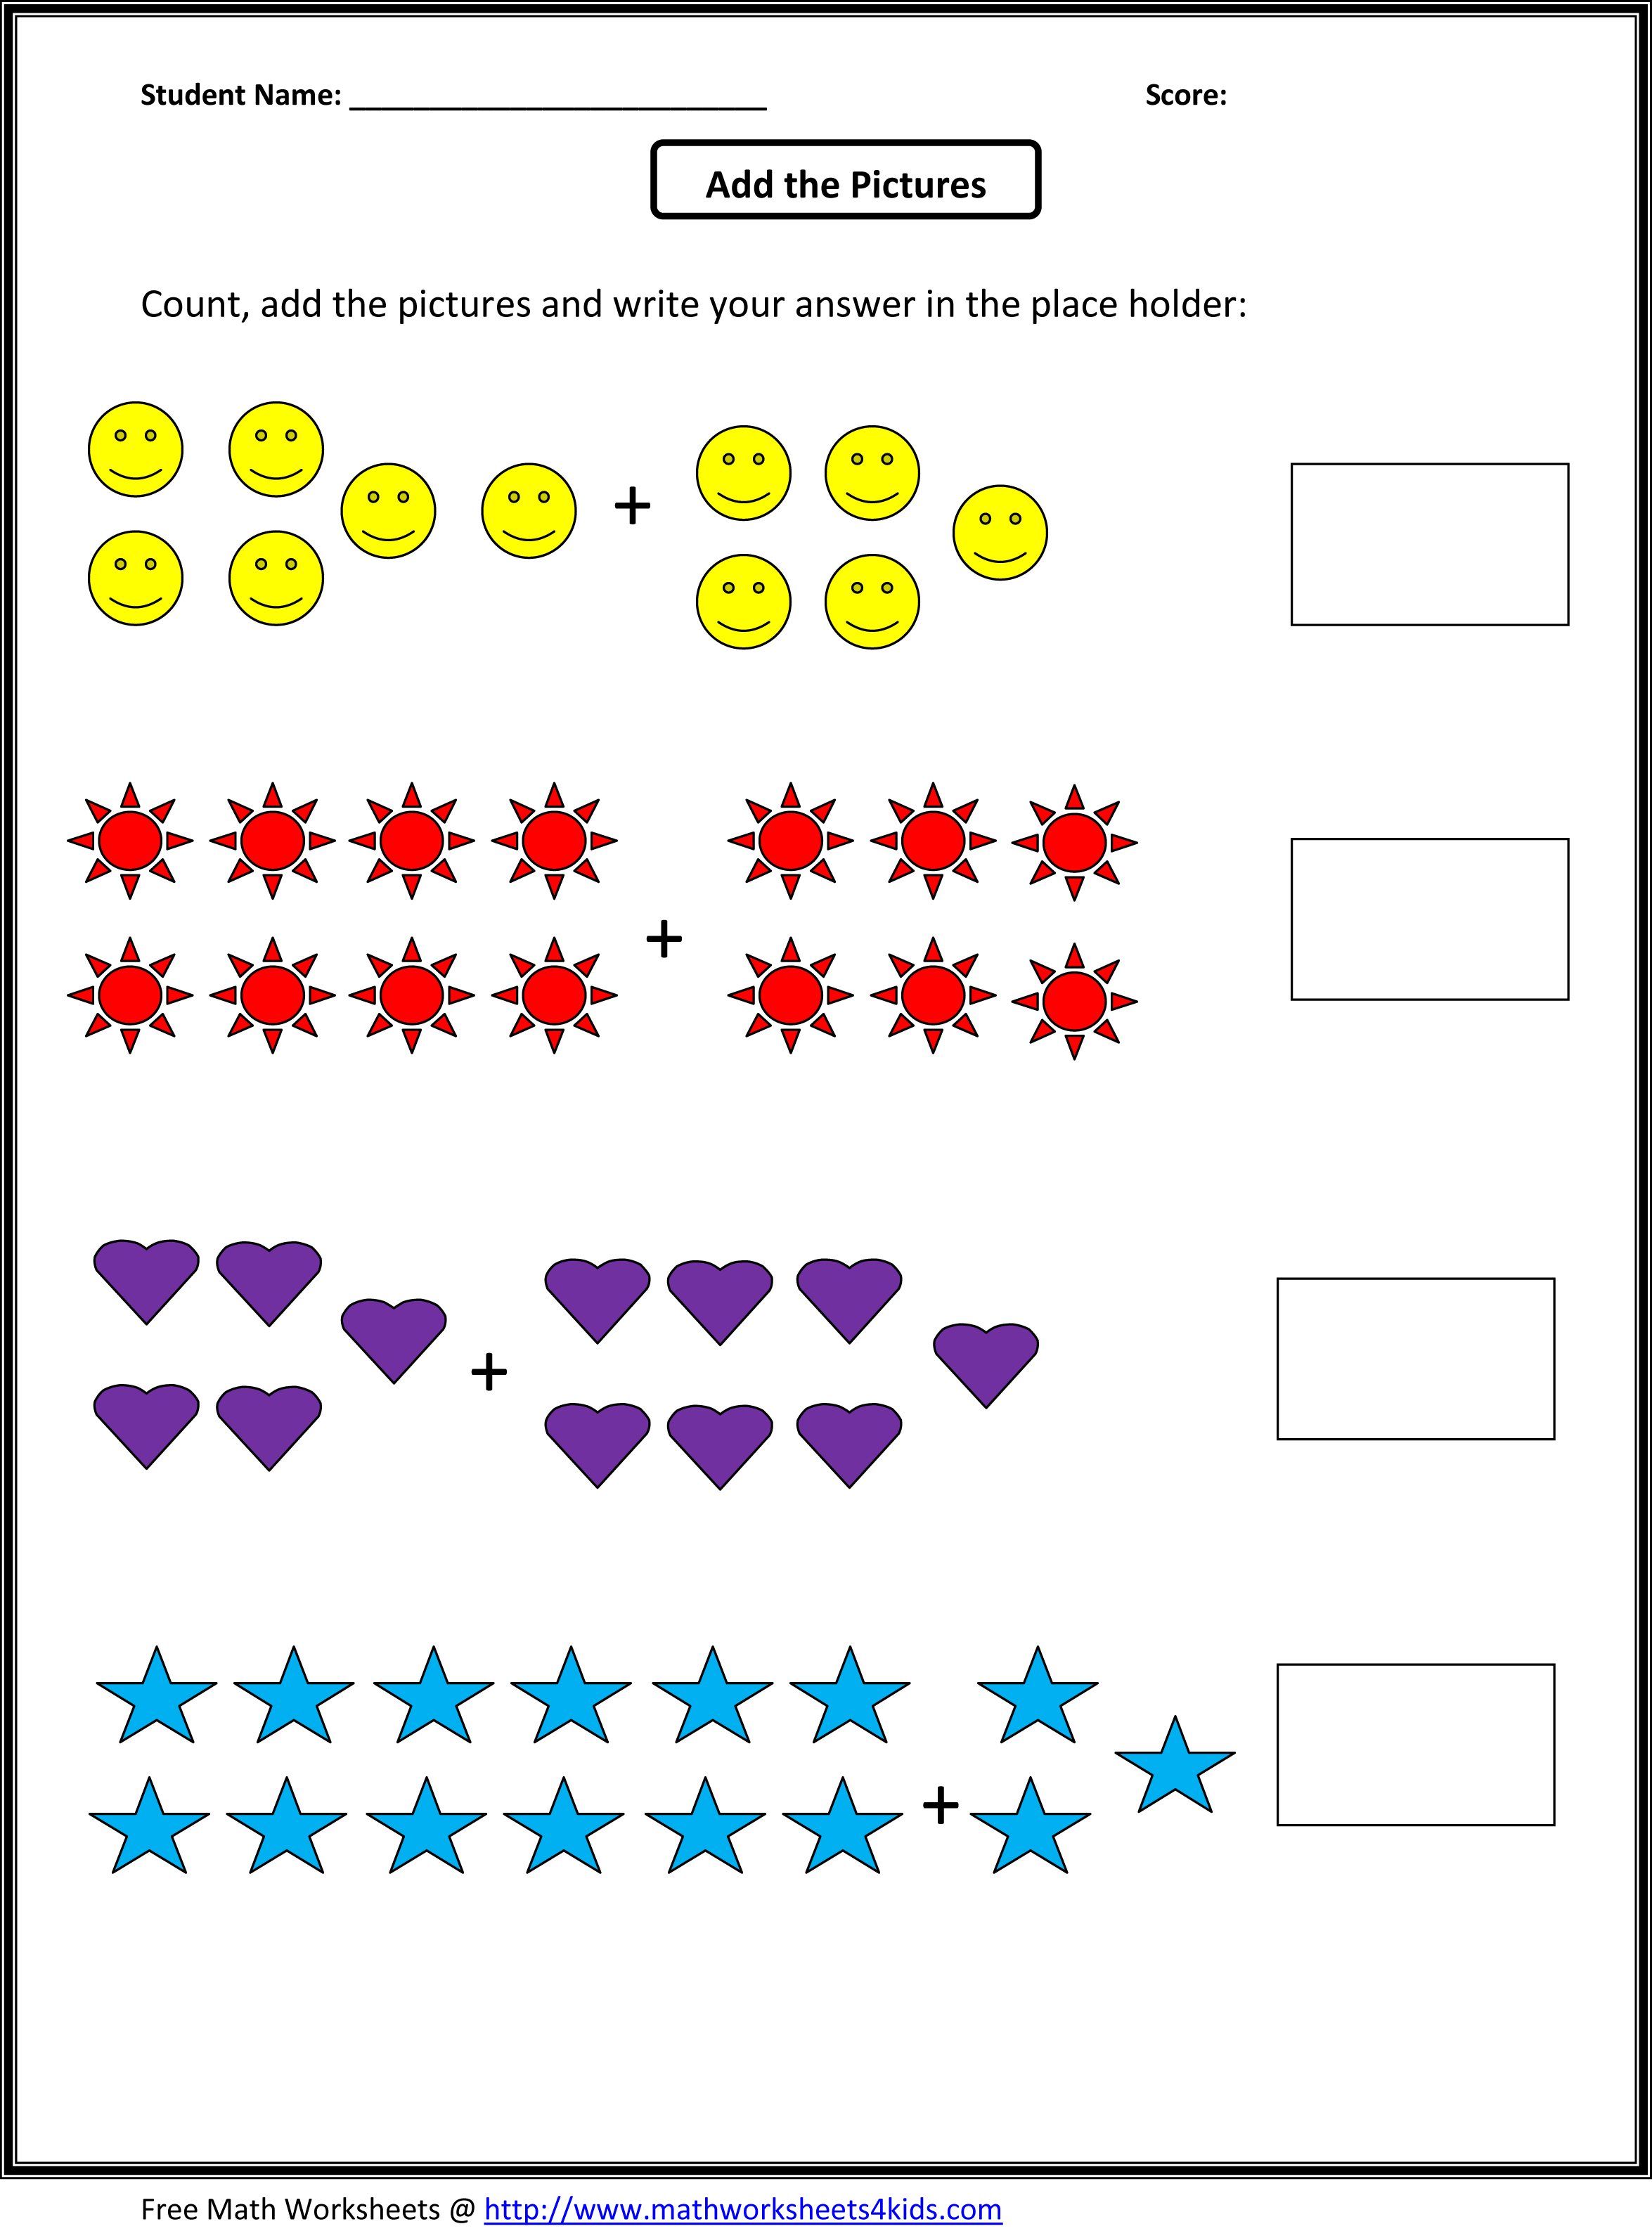 Proatmealus  Fascinating Grade  Maths Worksheet  Reocurent With Exciting Math Worksheets For St Grade Free  Reocurent With Appealing Different Types Of Triangles Worksheet Also Nature Of Matter Worksheet In Addition Stoichiometry Worksheets With Answers And Estimating Fractions Worksheets As Well As Exercise Worksheets For Kids Additionally Components Of Blood Worksheet From Reocurentcom With Proatmealus  Exciting Grade  Maths Worksheet  Reocurent With Appealing Math Worksheets For St Grade Free  Reocurent And Fascinating Different Types Of Triangles Worksheet Also Nature Of Matter Worksheet In Addition Stoichiometry Worksheets With Answers From Reocurentcom